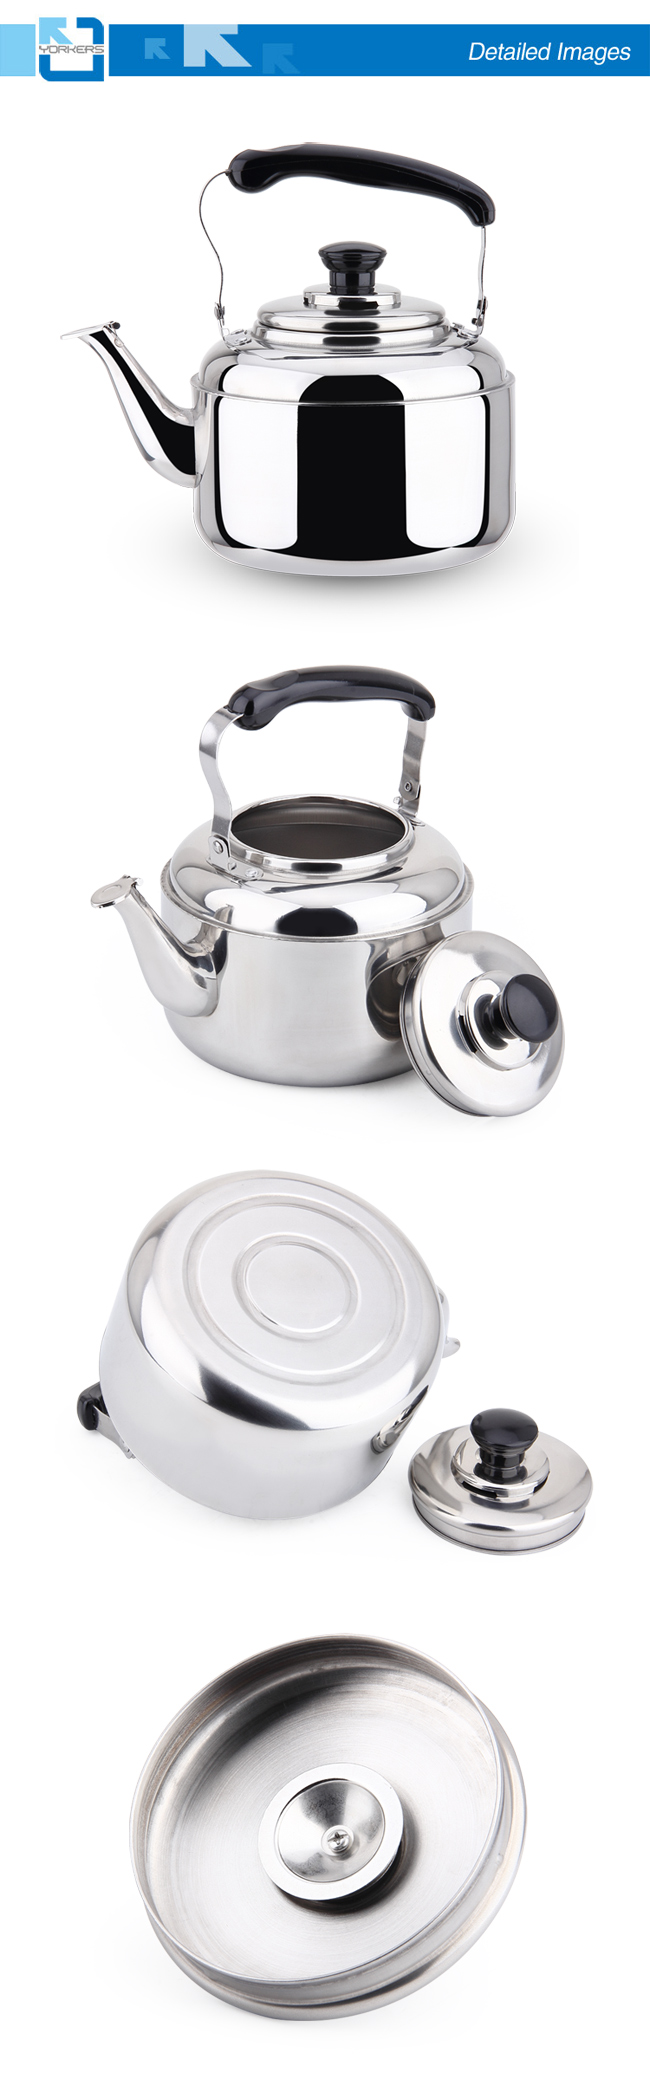 201 Stainless Steel Water Kettle and Tea Kettle with Portable Handle